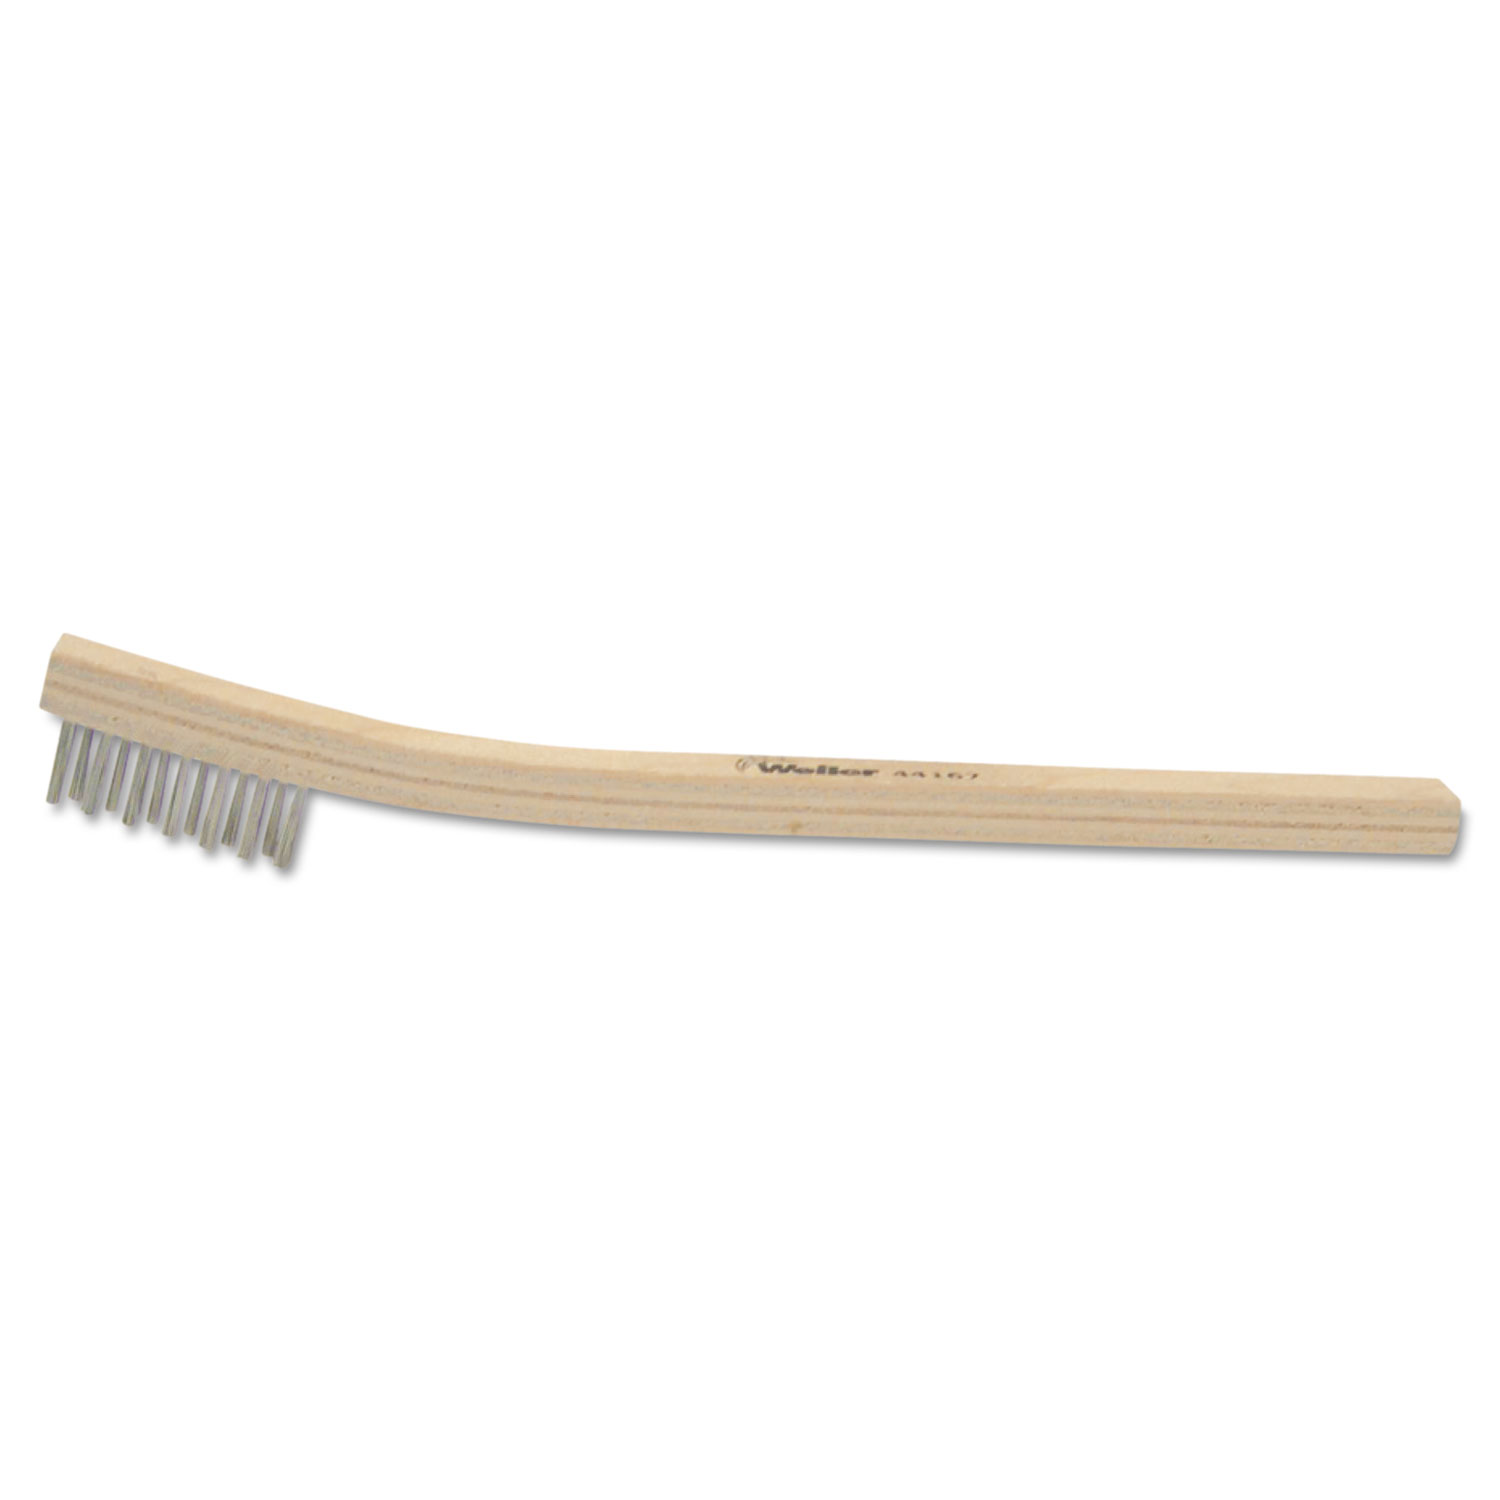 BH-37-SS Small Hand Scratch Brush, 3 x 7, Stainless Steel